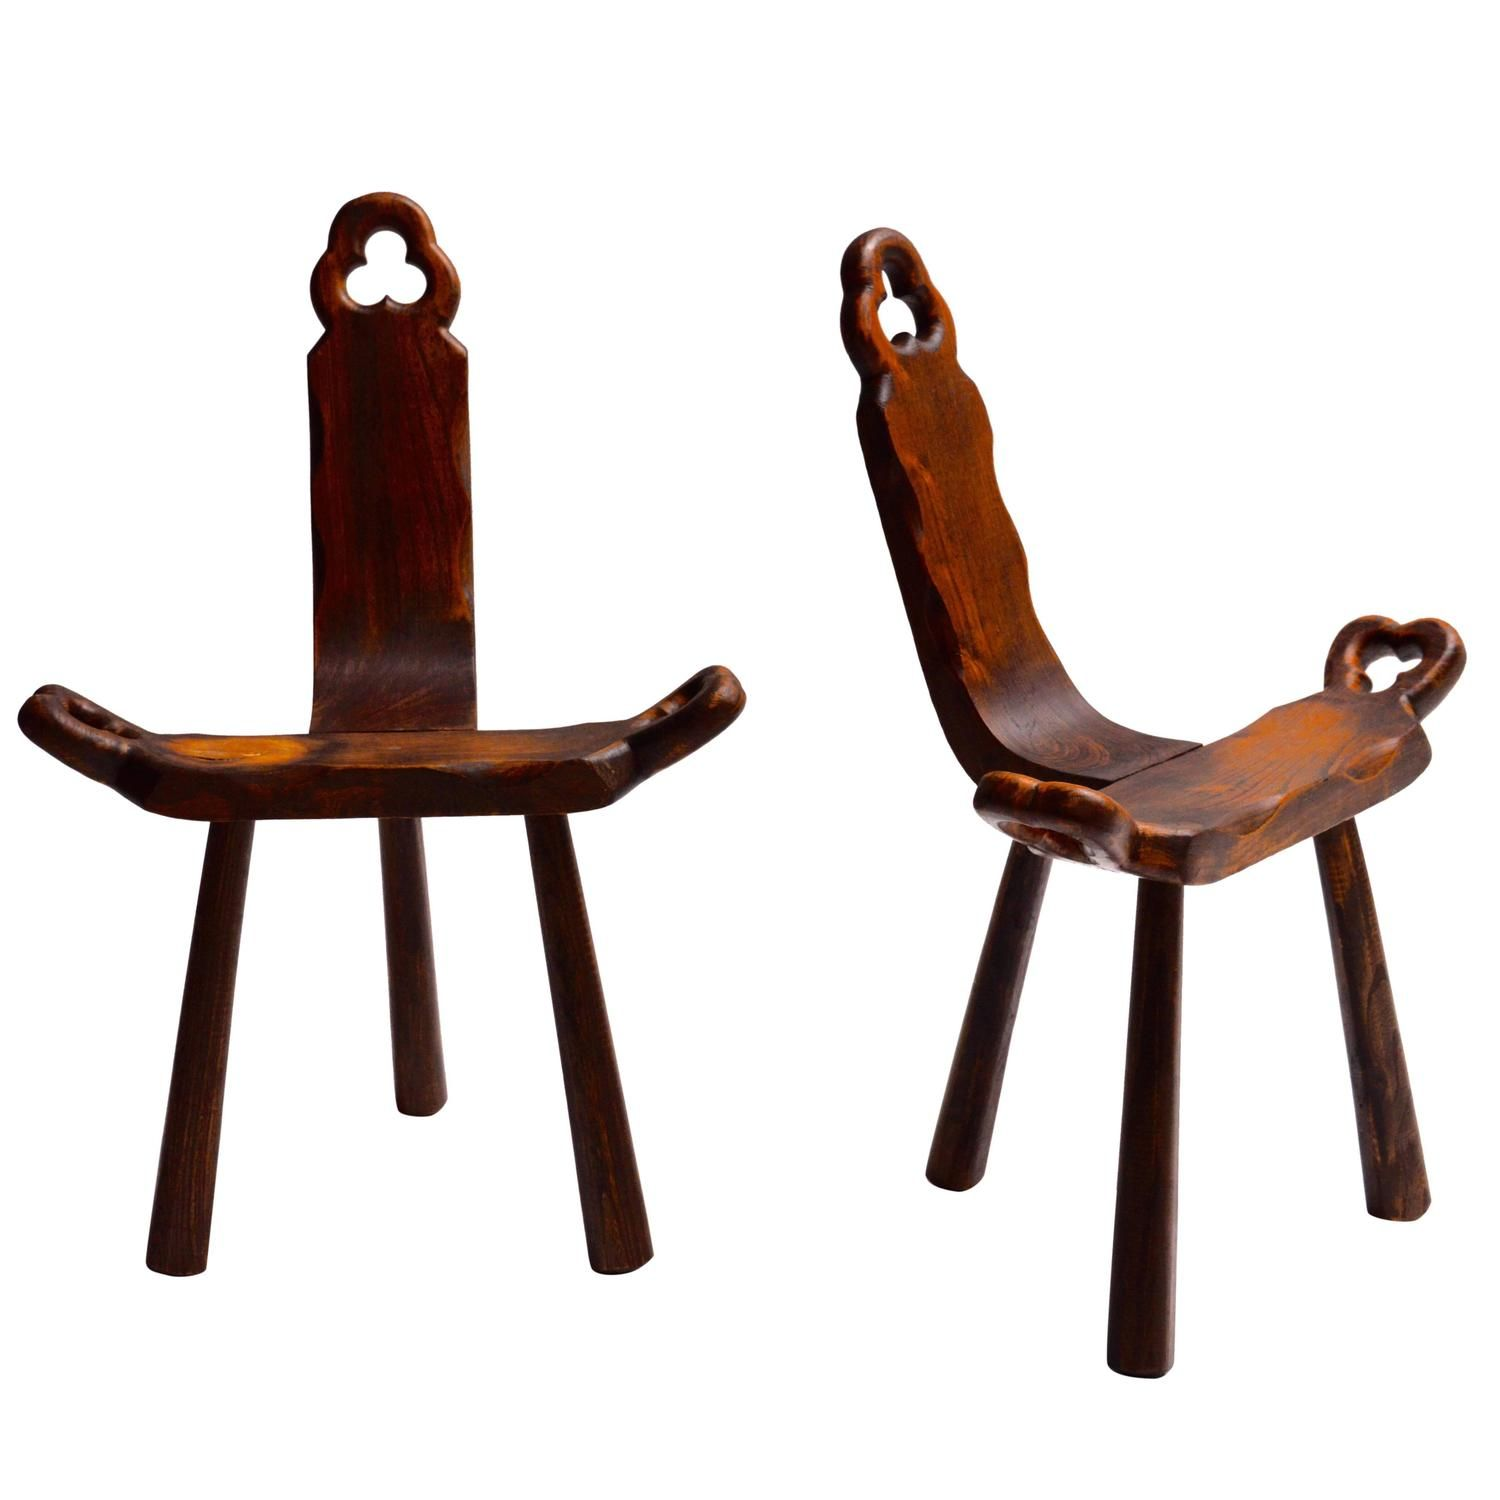 Pair Of Wood Birthing Chairs - From A Unique Collection